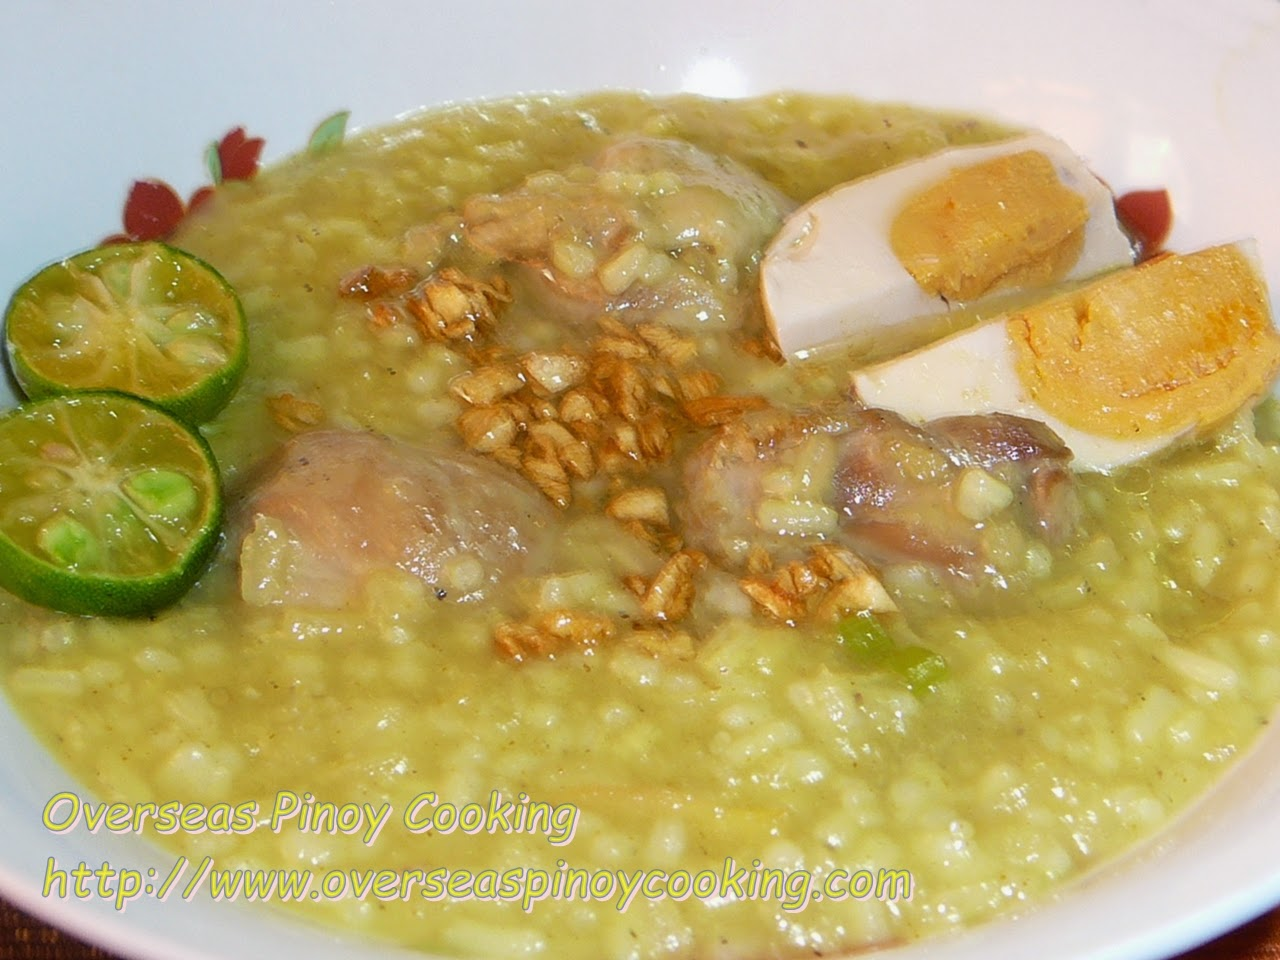 Arroz Caldo with Salted Egg